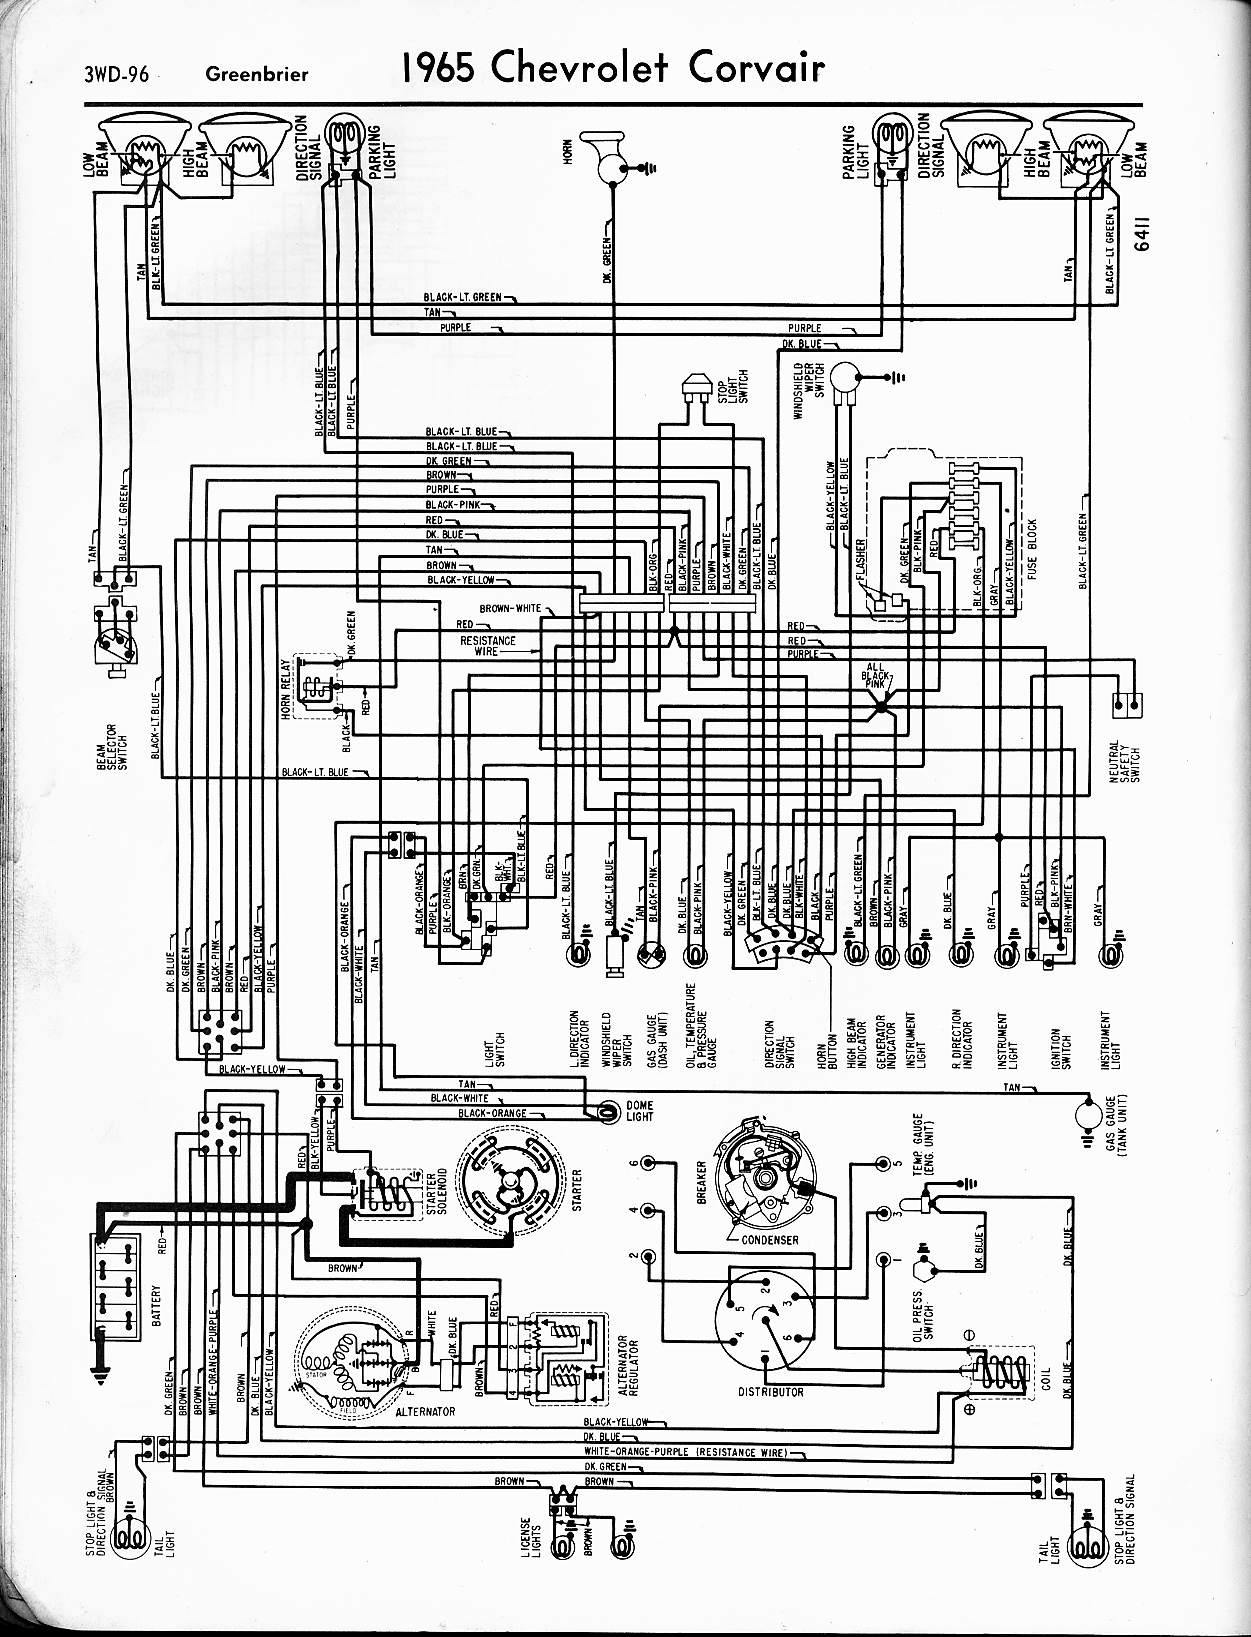 MWireChev65_3WD 096 57 65 chevy wiring diagrams 1965 corvair wiring diagram at aneh.co